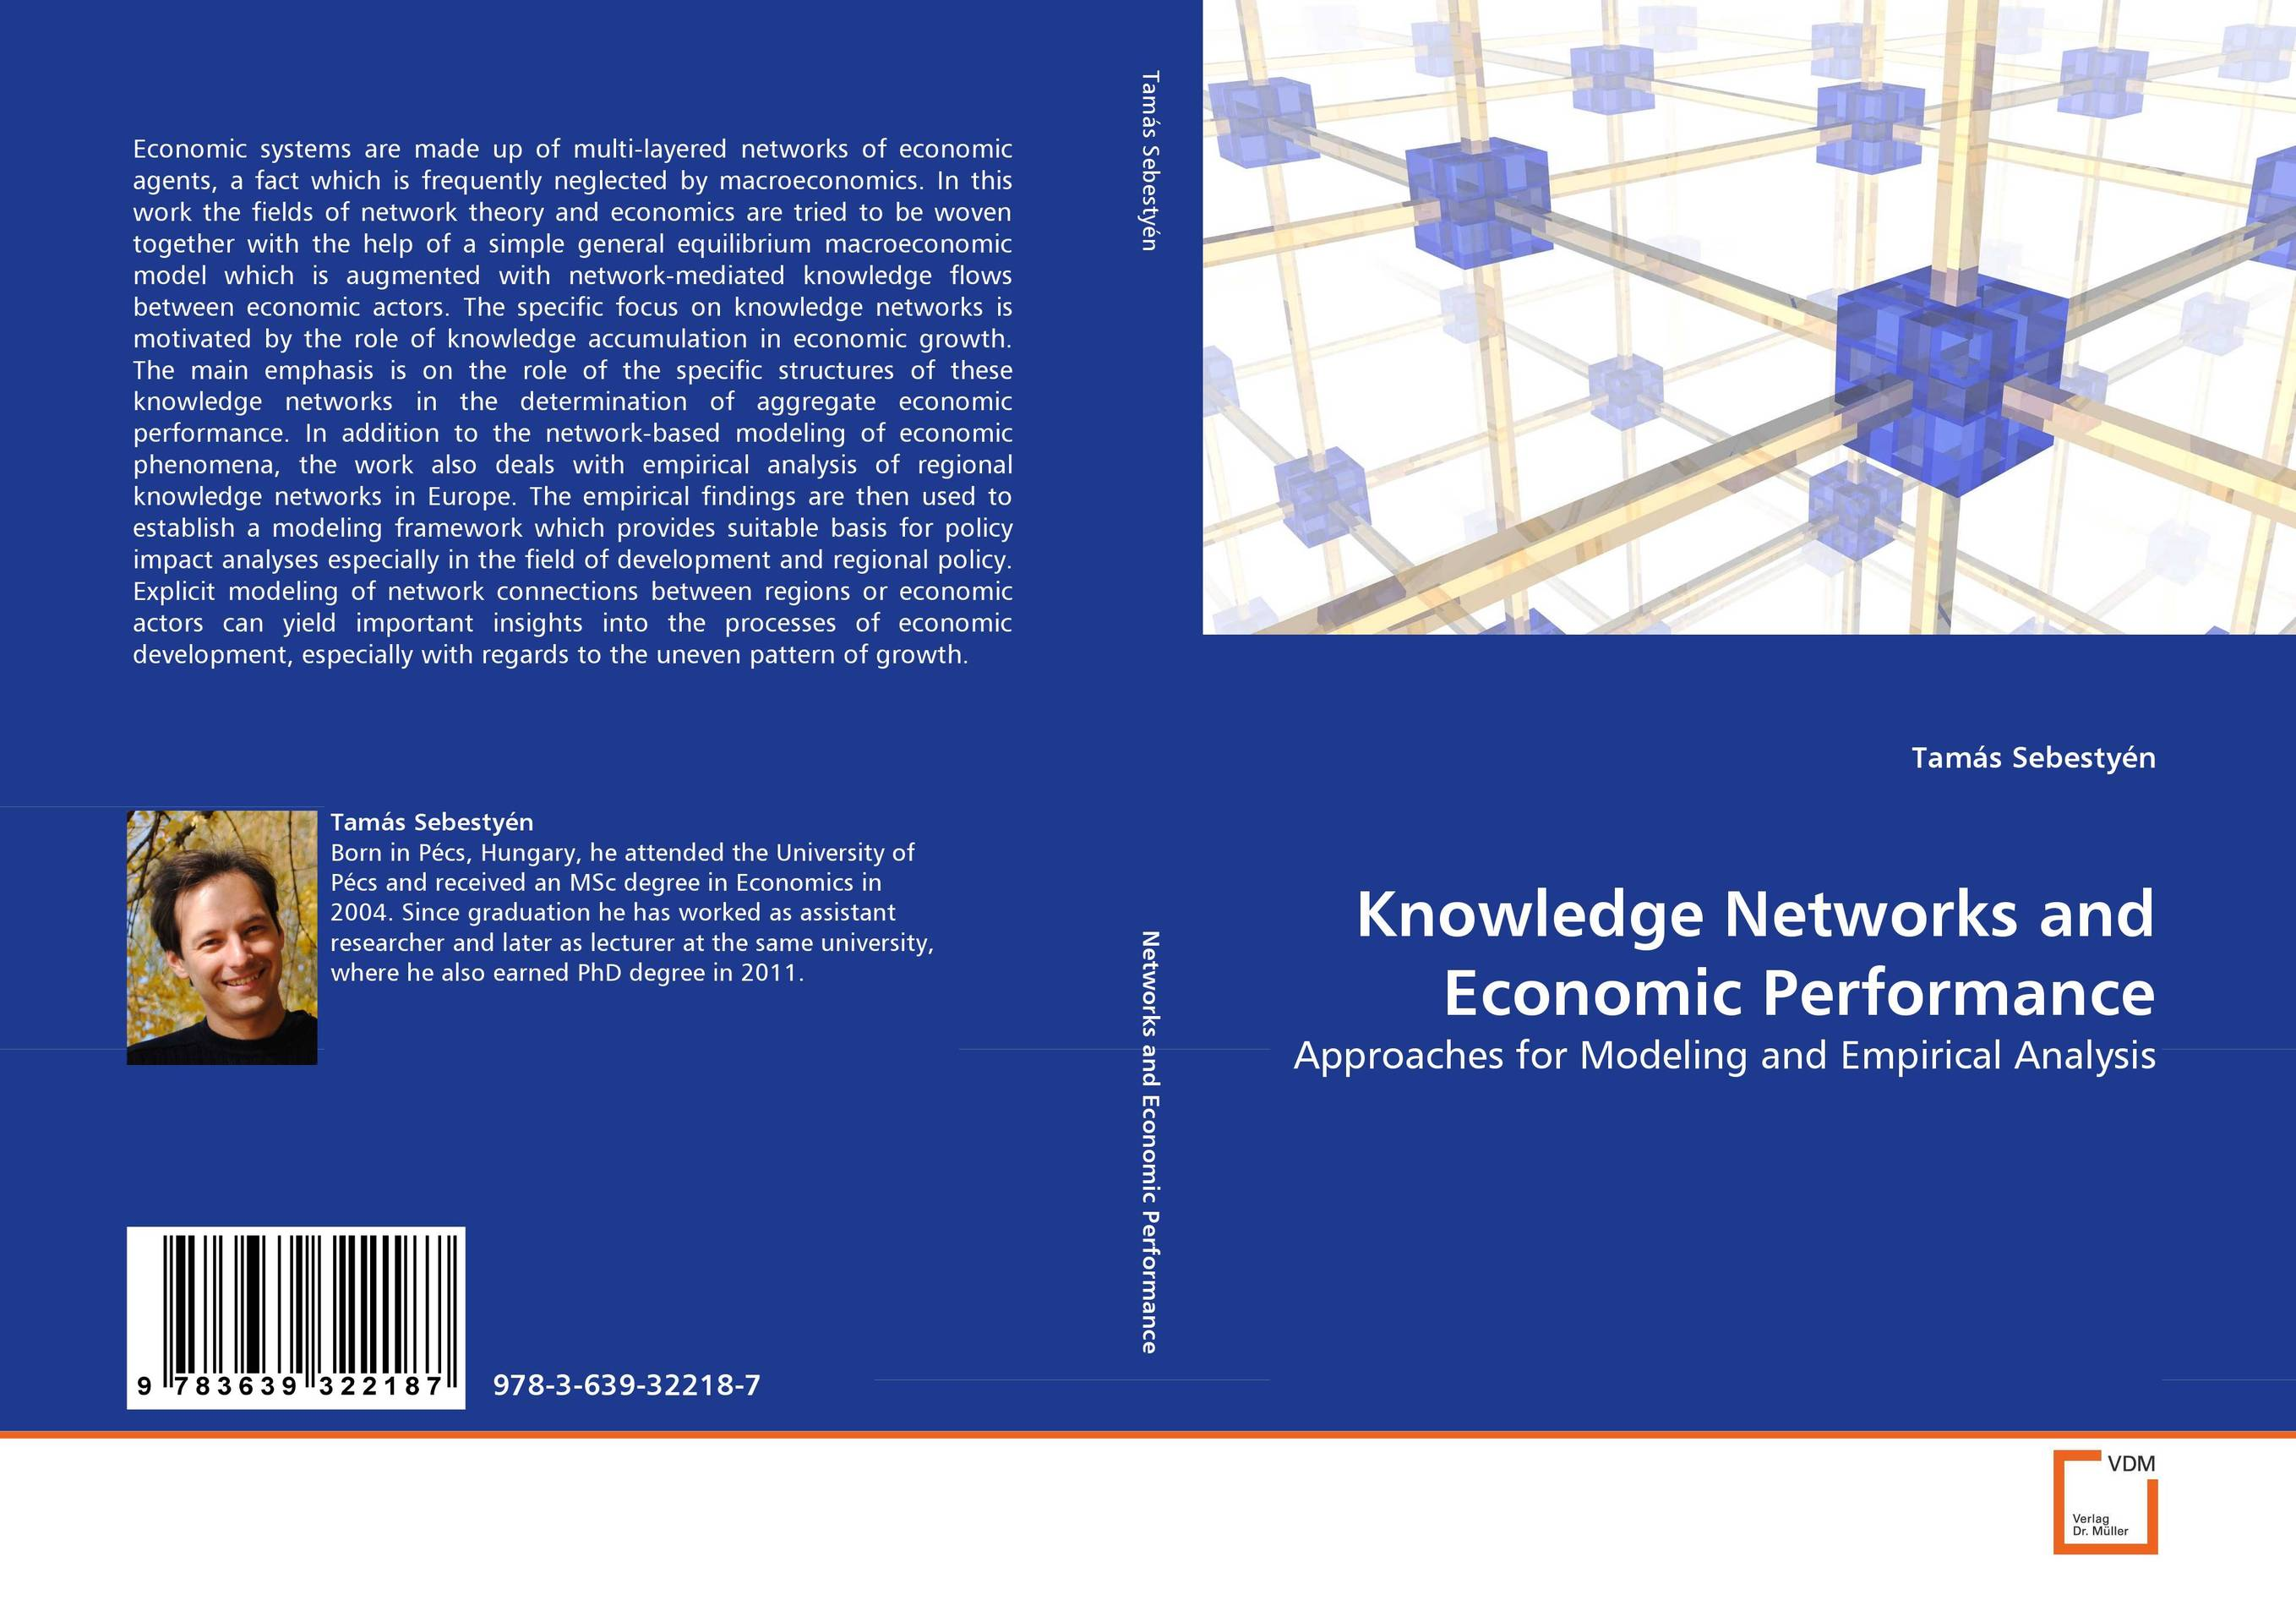 Knowledge Networks and Economic Performance